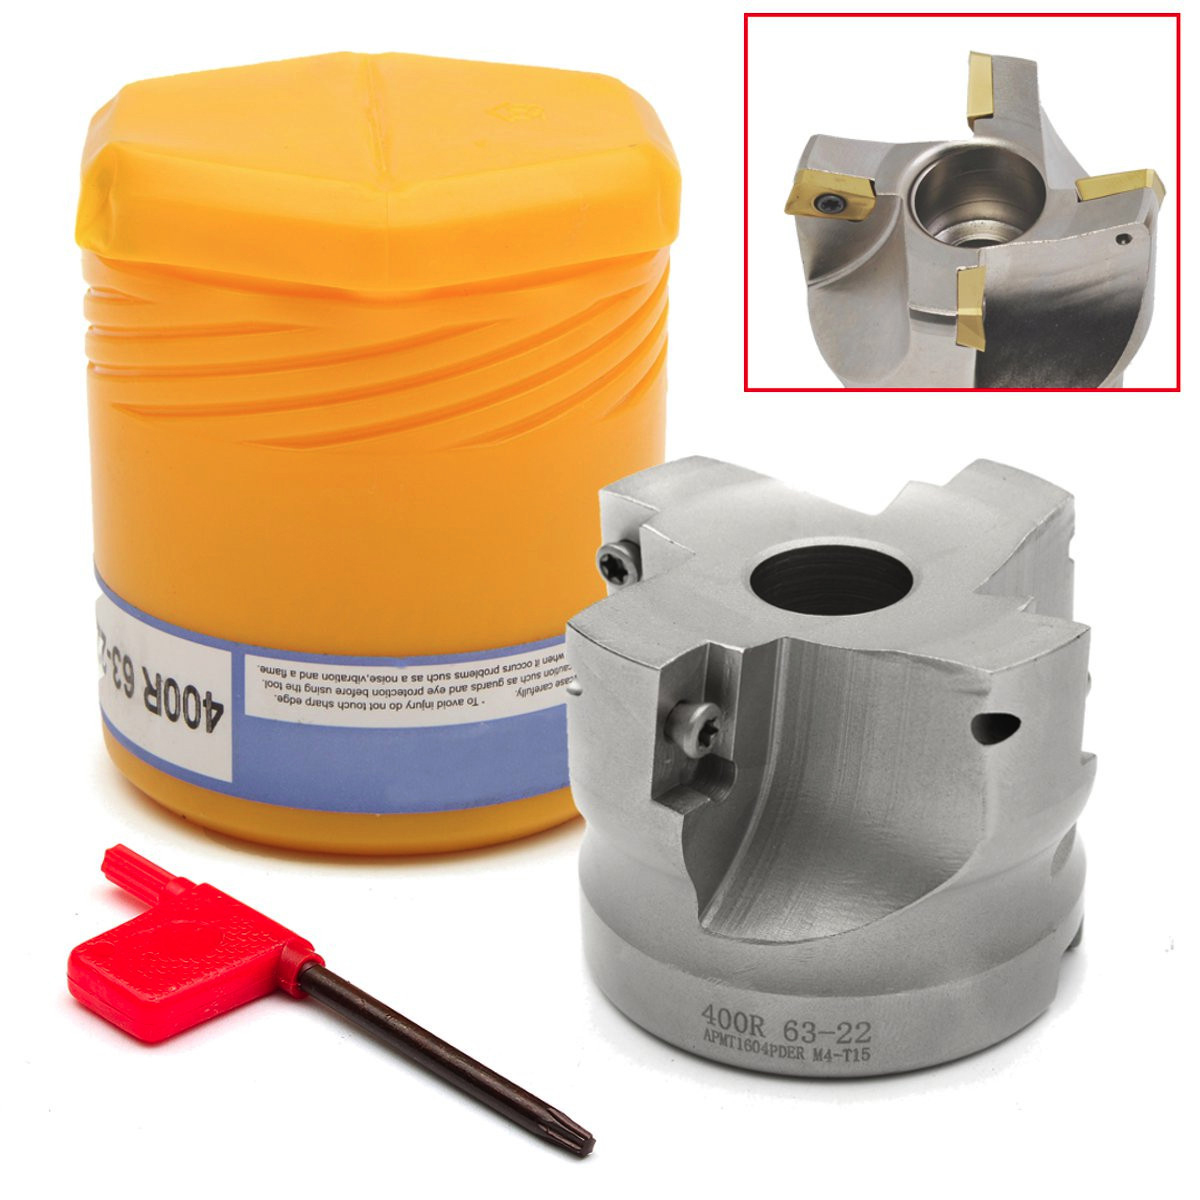 1pc RAP 400R-63-22-4F Face Milling Cutter With T15 Wrench and Box Mayitr For APMT1604 Insert Lathe Tool precision m16 bt40 400r 63 22 face endmill and 10pcs apmt1604 carbide insert new